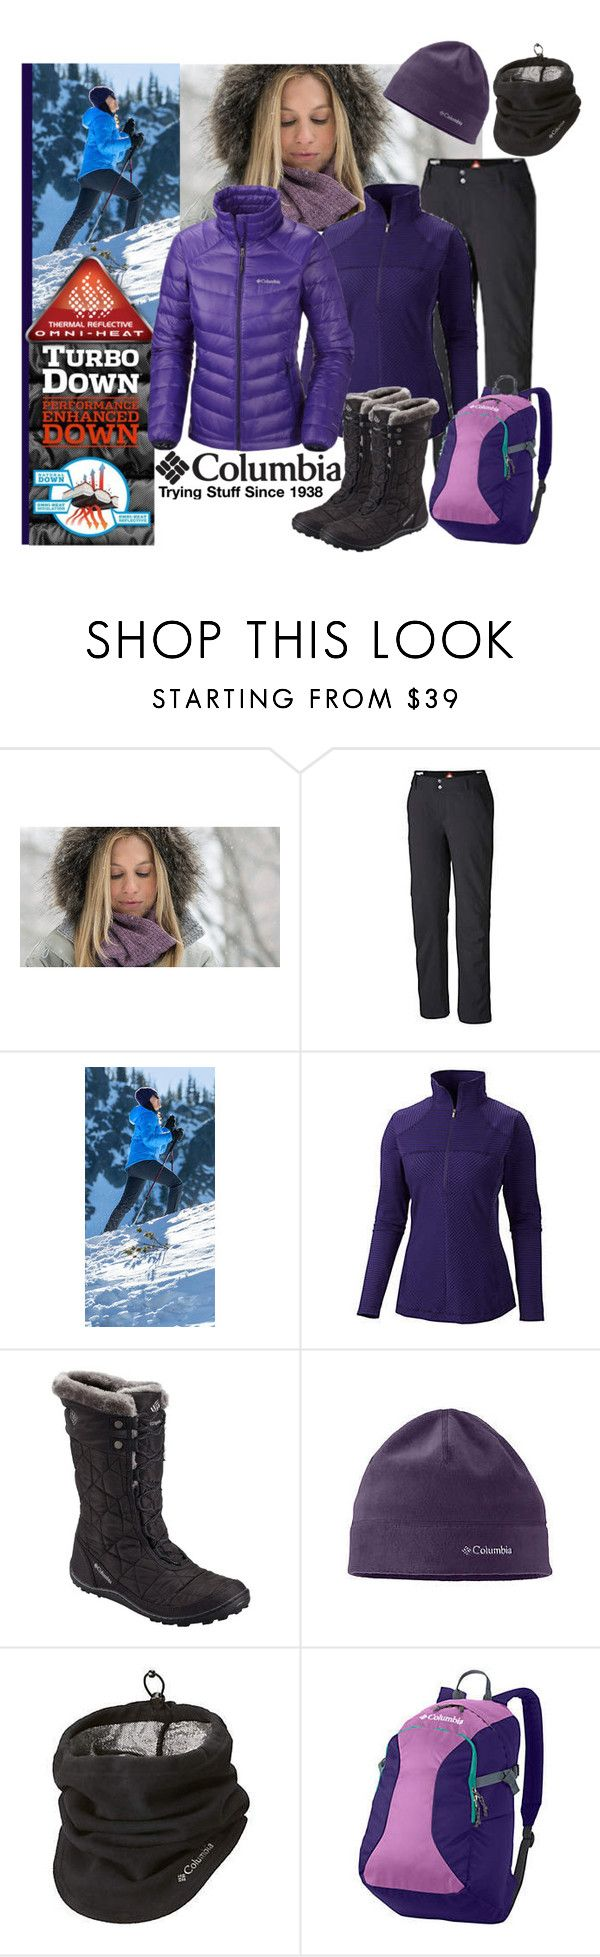 """""""Get Down With Columbia TurboDown: Contest Entry"""" by robin-phelps ❤ liked on Polyvore featuring Columbia Sportswear, TurnDown, Columbia and tryingstuff"""